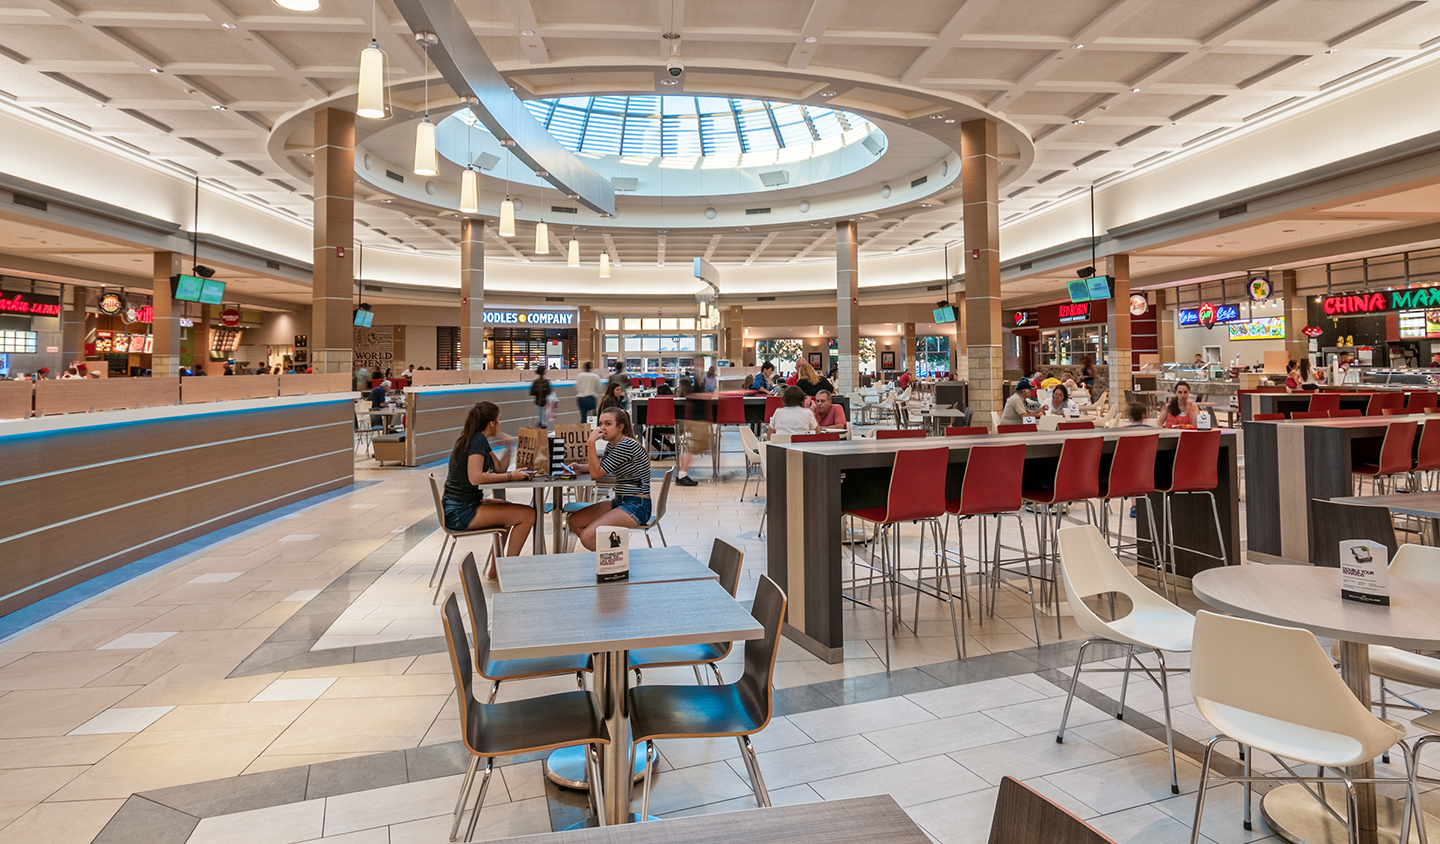 South Towne Mall Food Court